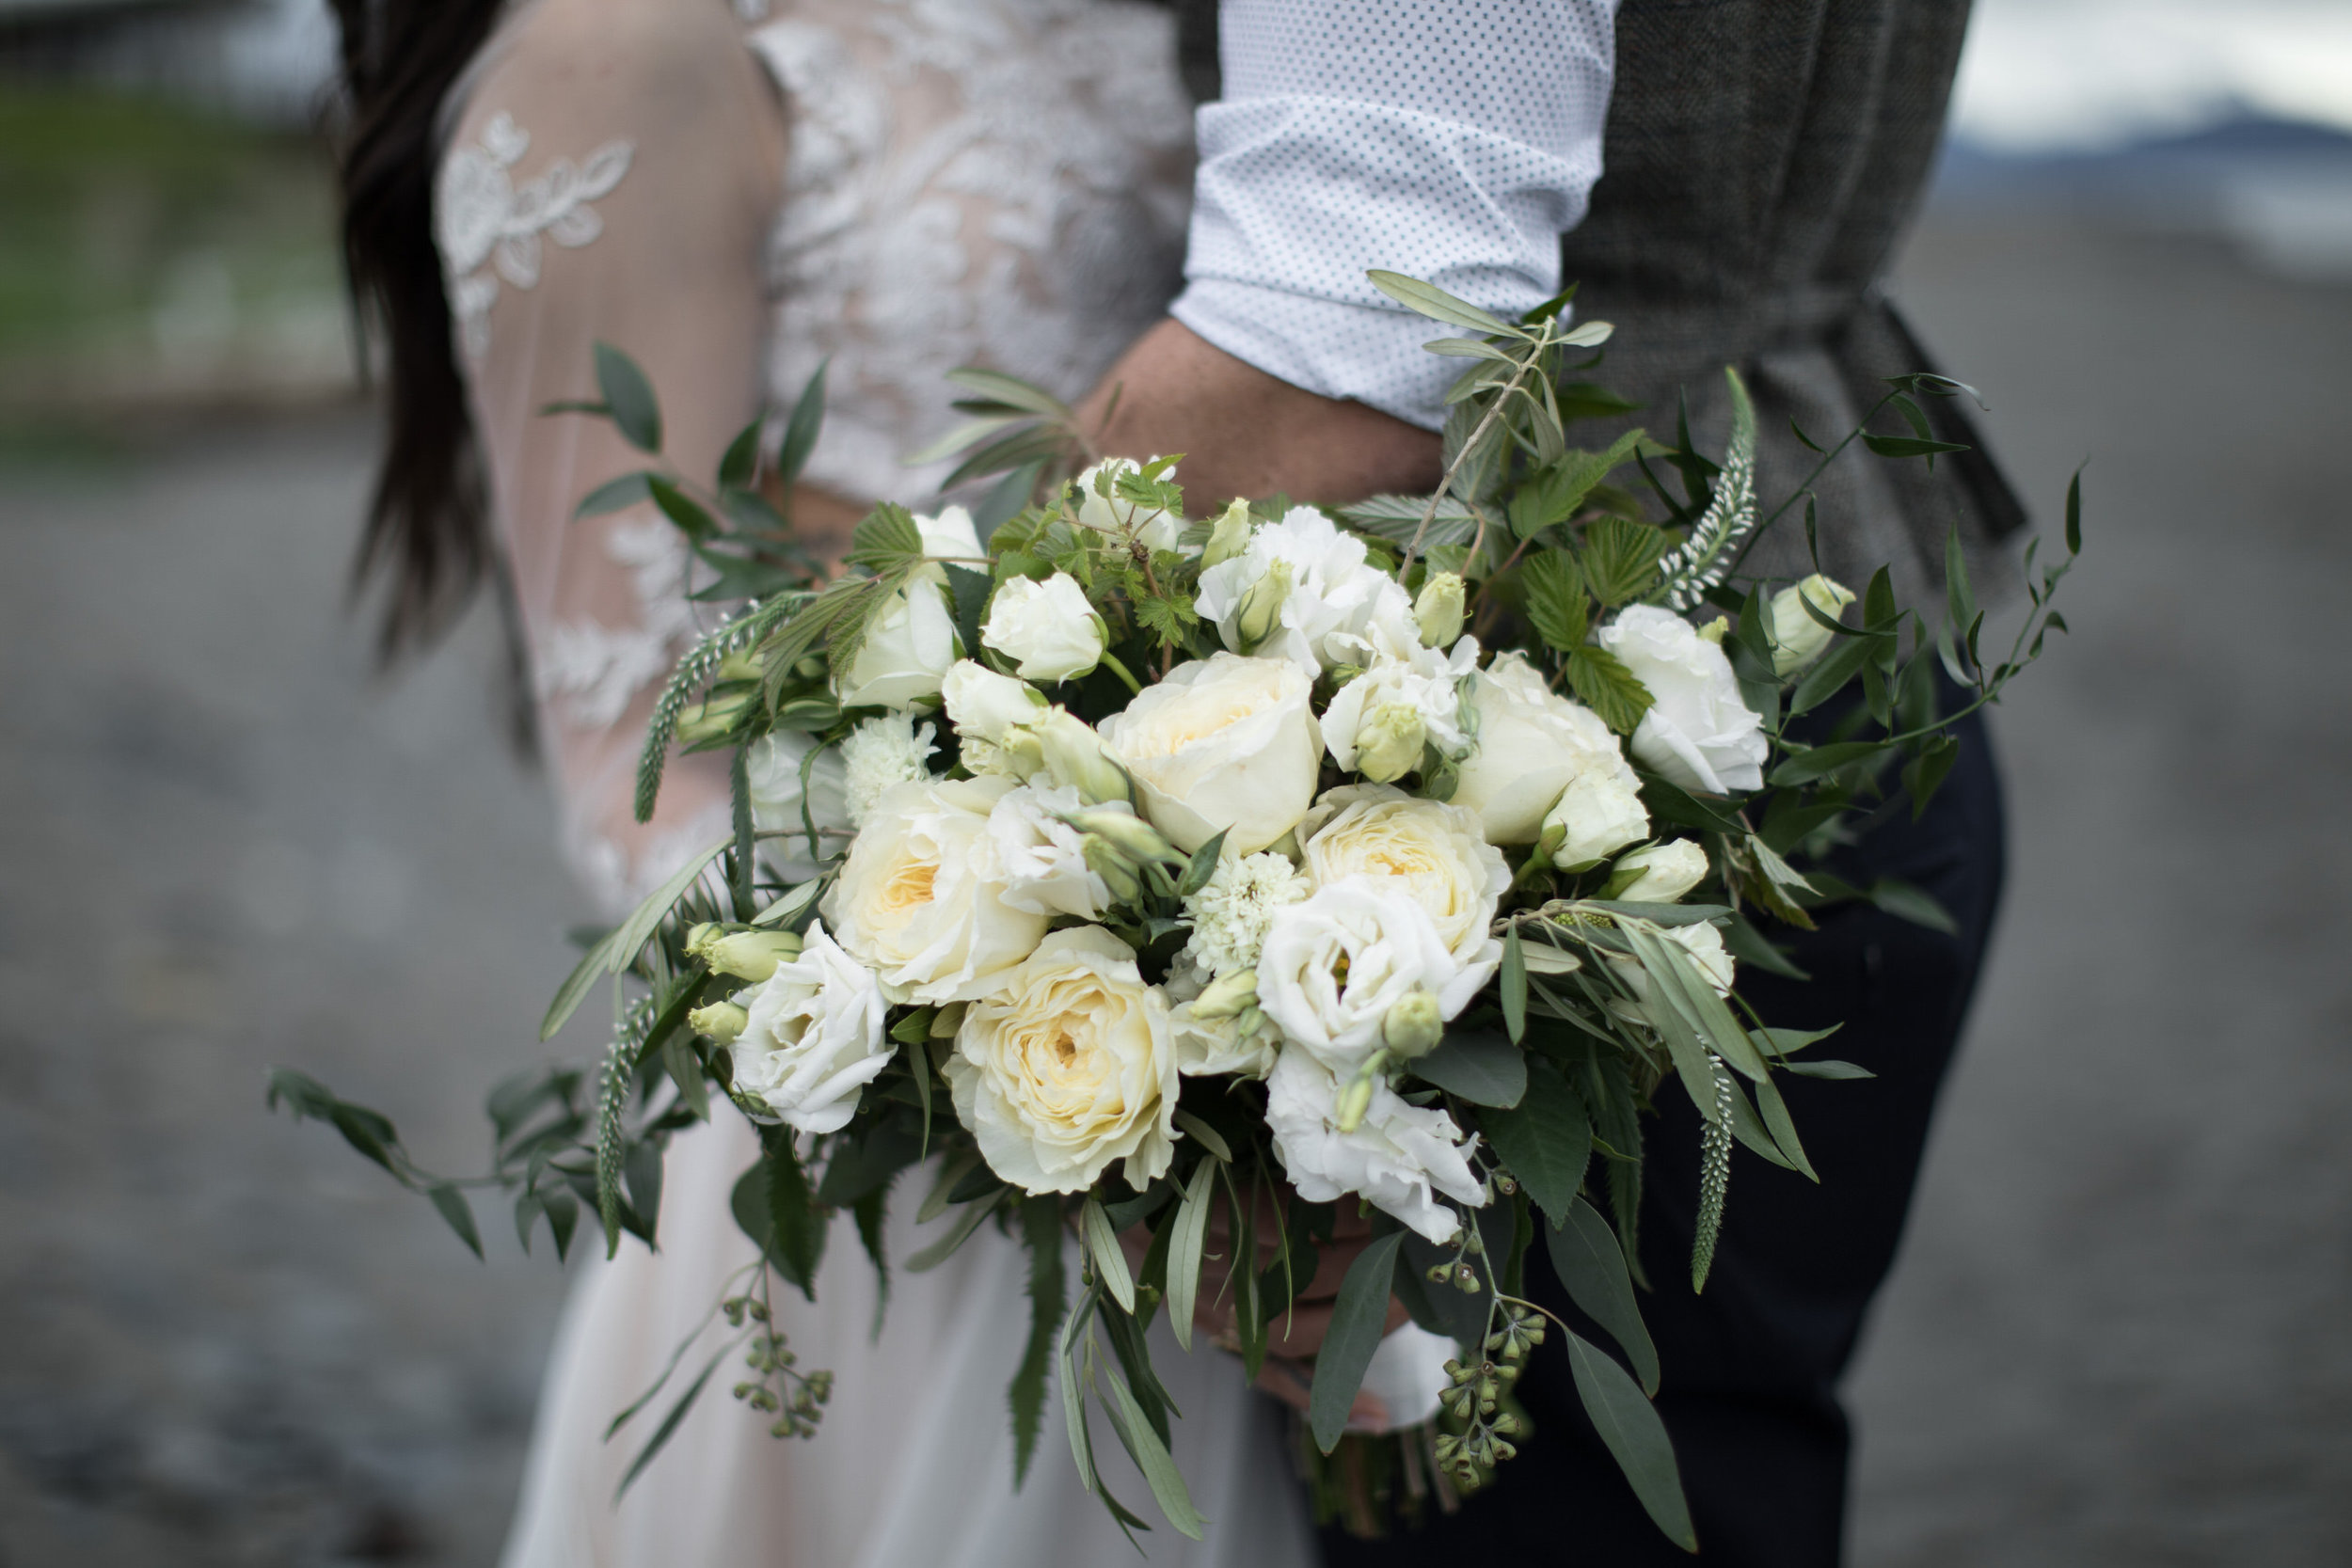 photo: Tyler Rye. This bouquet has already walked down the aisle, been thrown to the ladies, and done a little wading in the ocean. Tough stuff, right?!